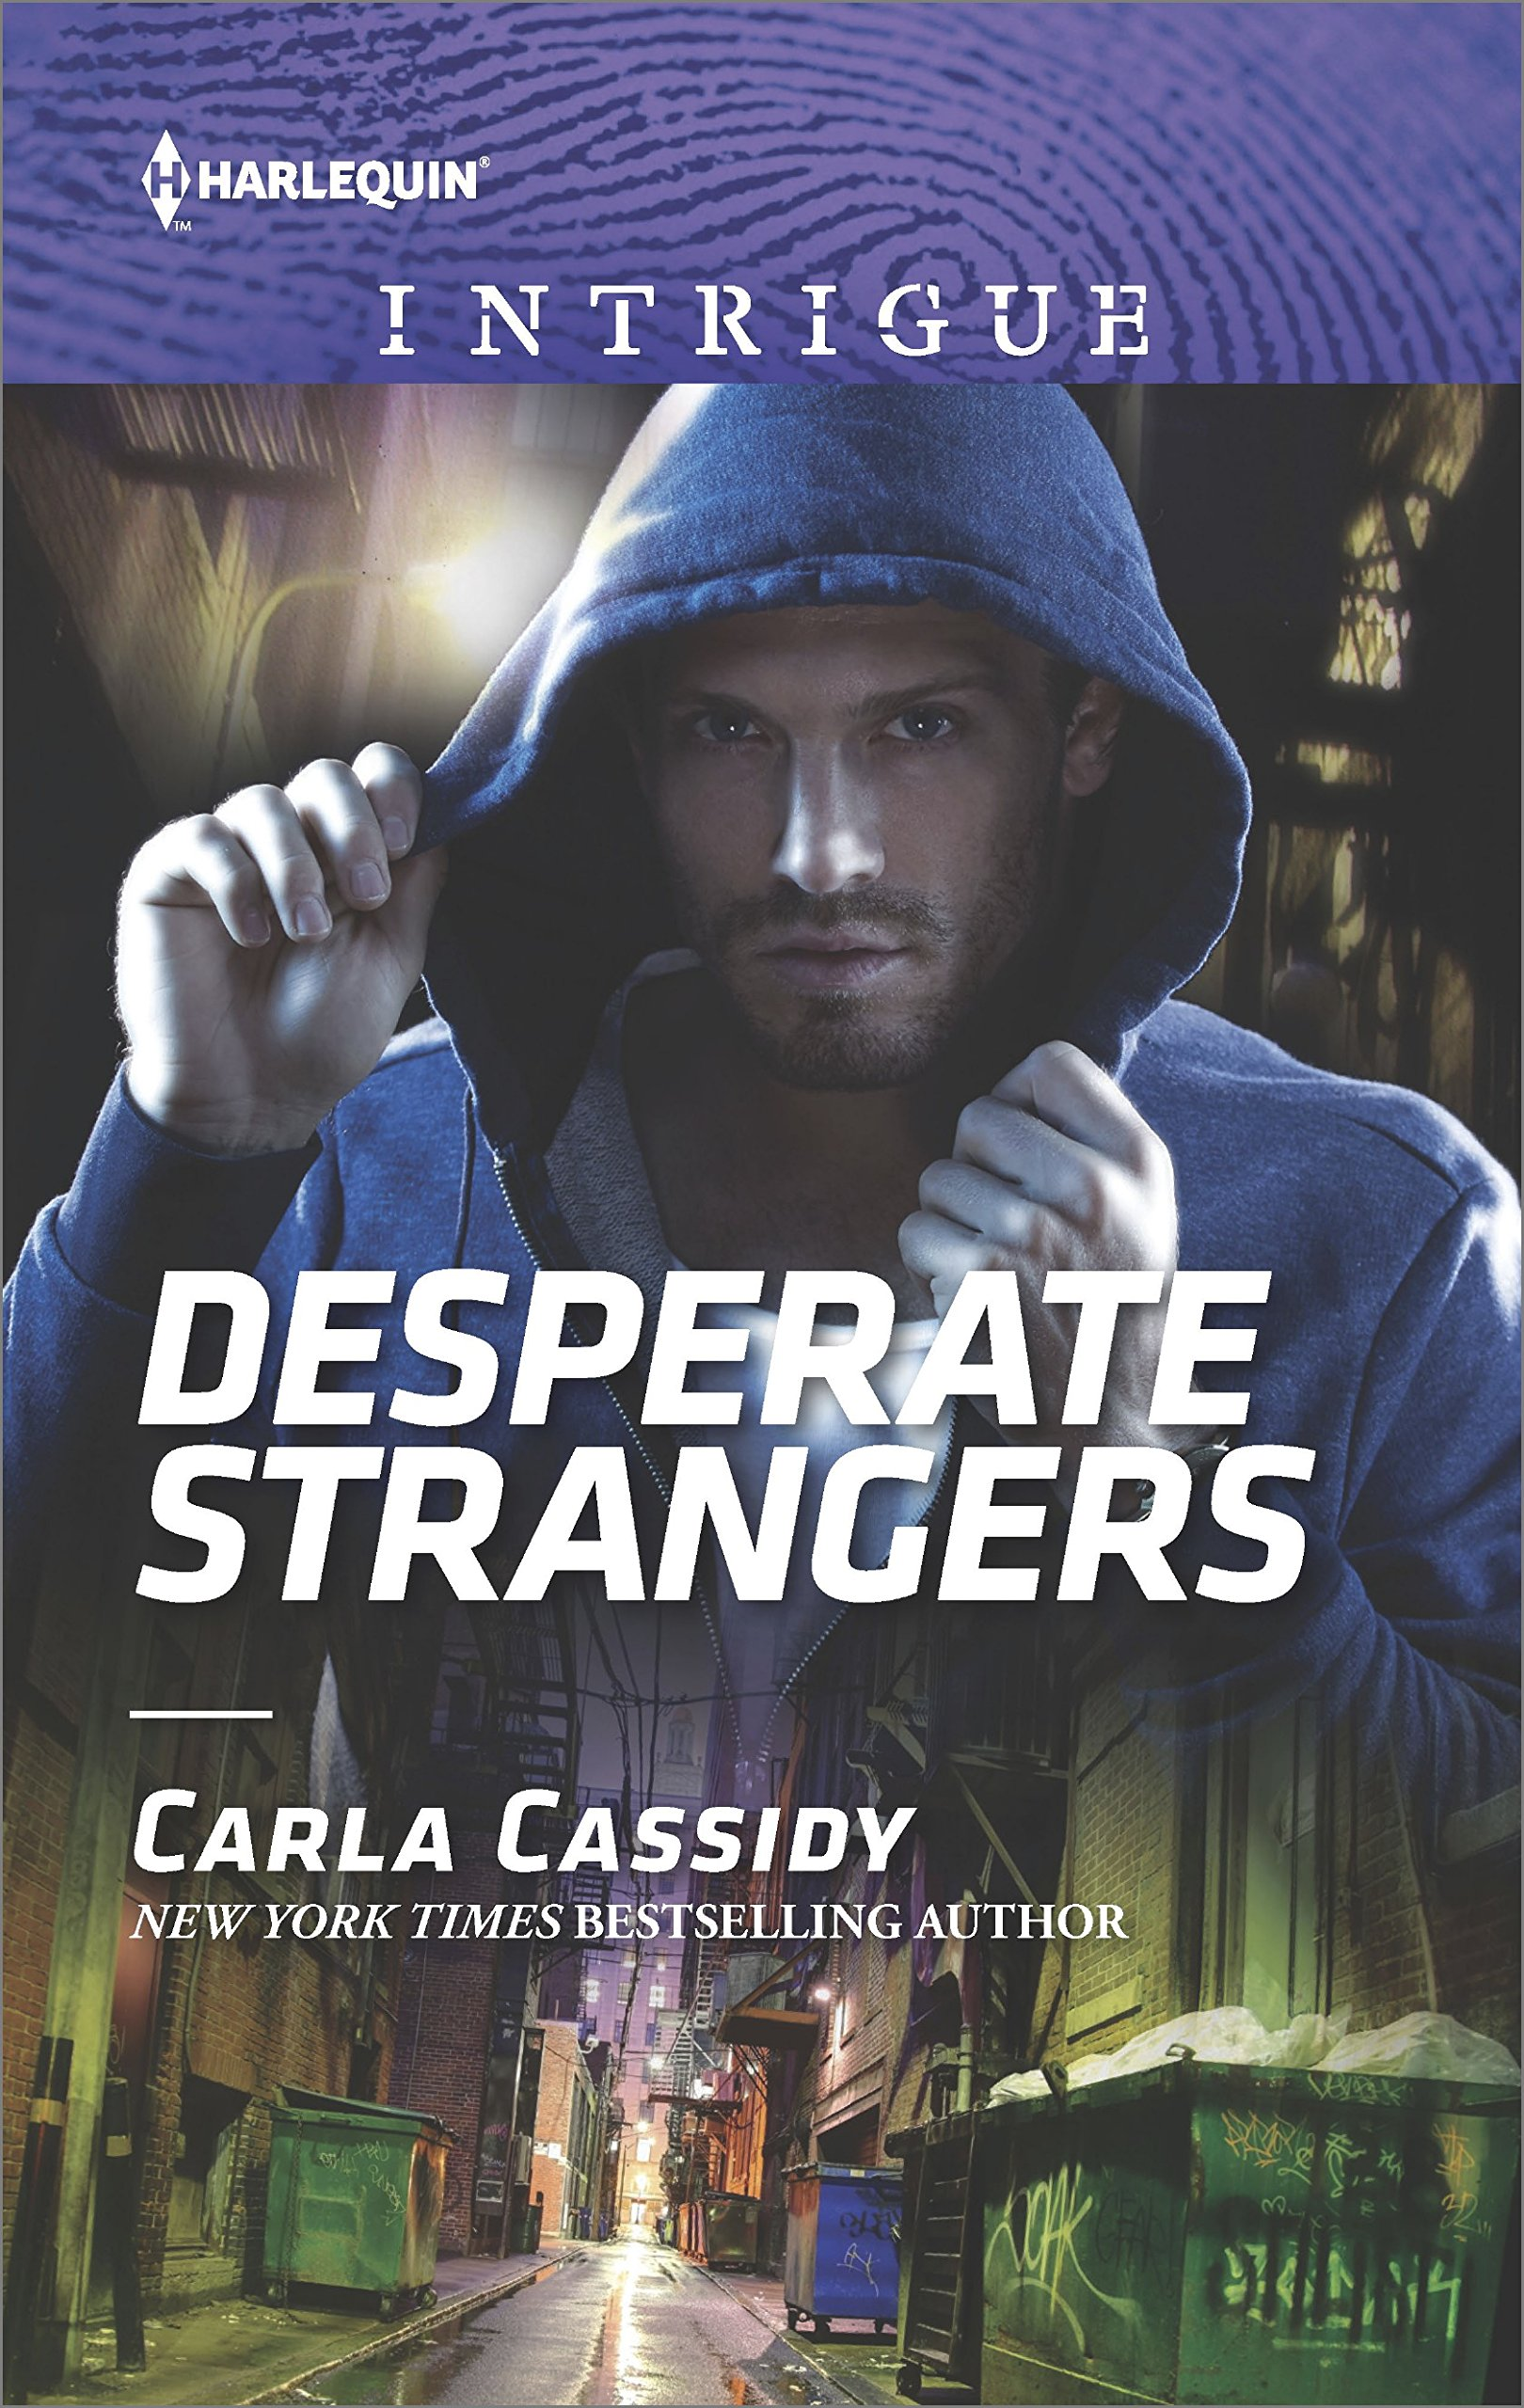 Amazon Desperate Strangers Harlequin Intrigue Series 9781335526311 Carla Cassidy Books